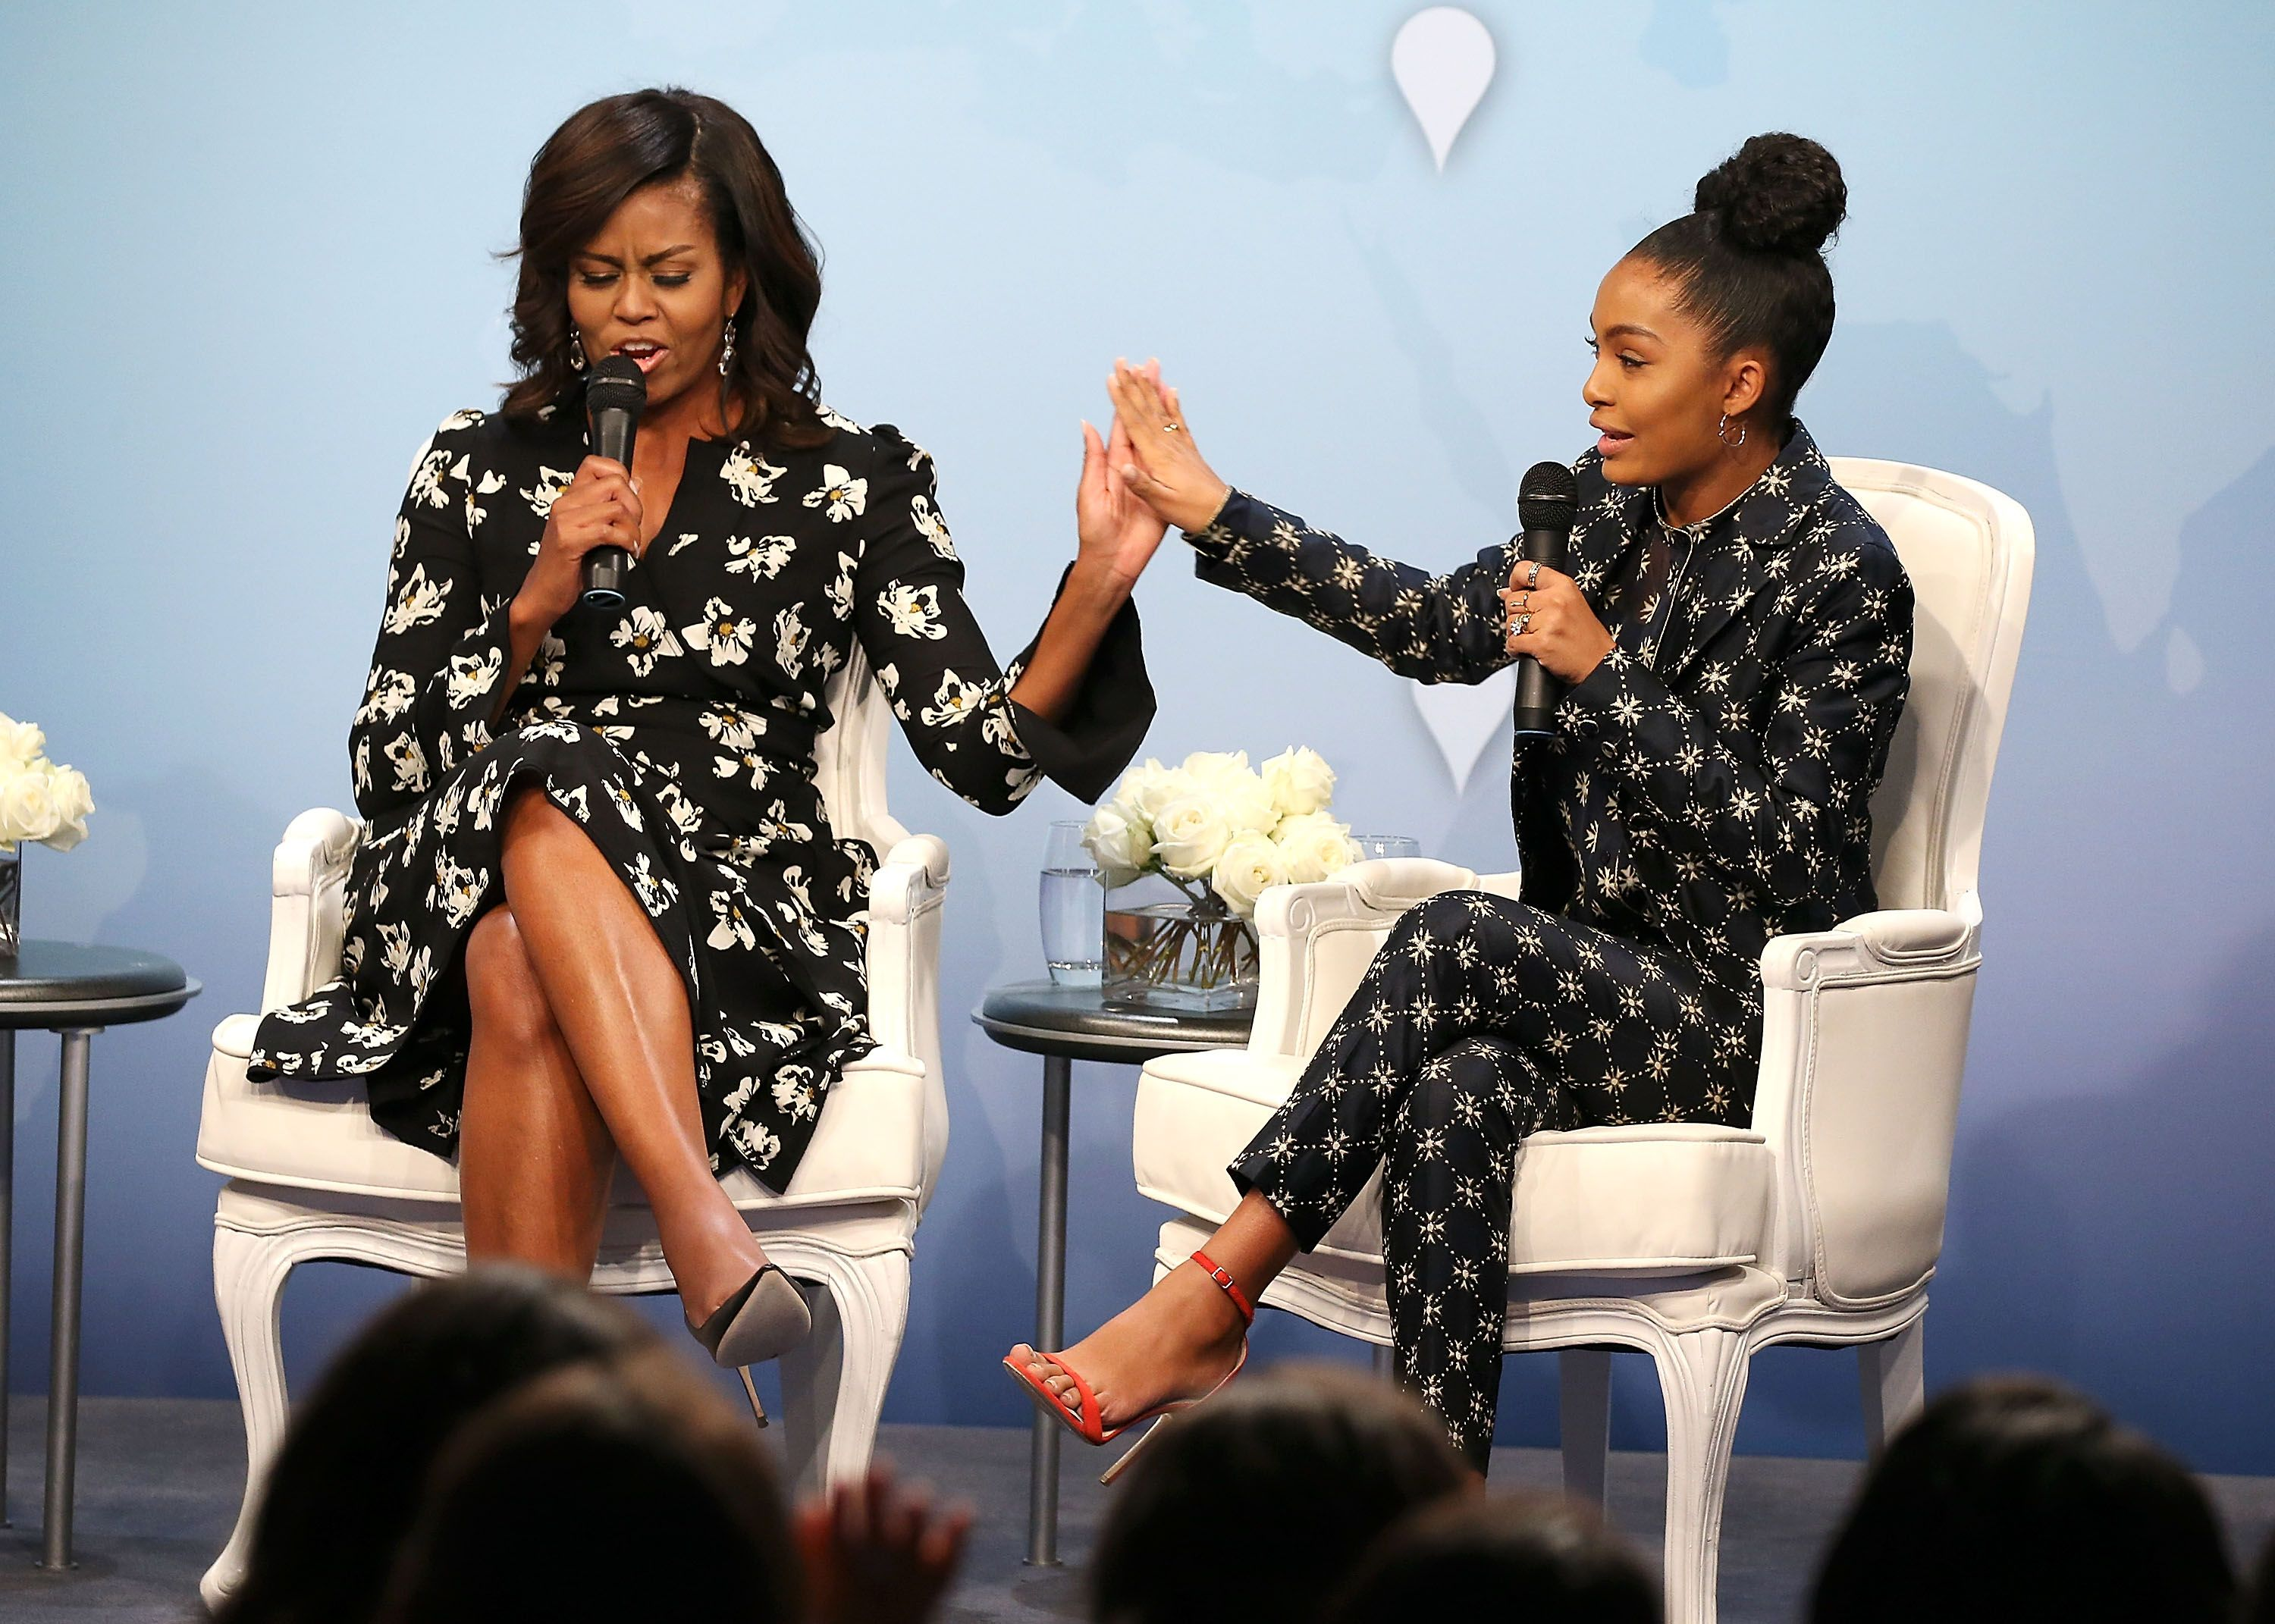 Yara Shahidi and former first lady Michelle Obama in 2016. Obama wrote a college recommendation letter for Shahidi, who is now studying anthropology, history, and economics at Harvard.